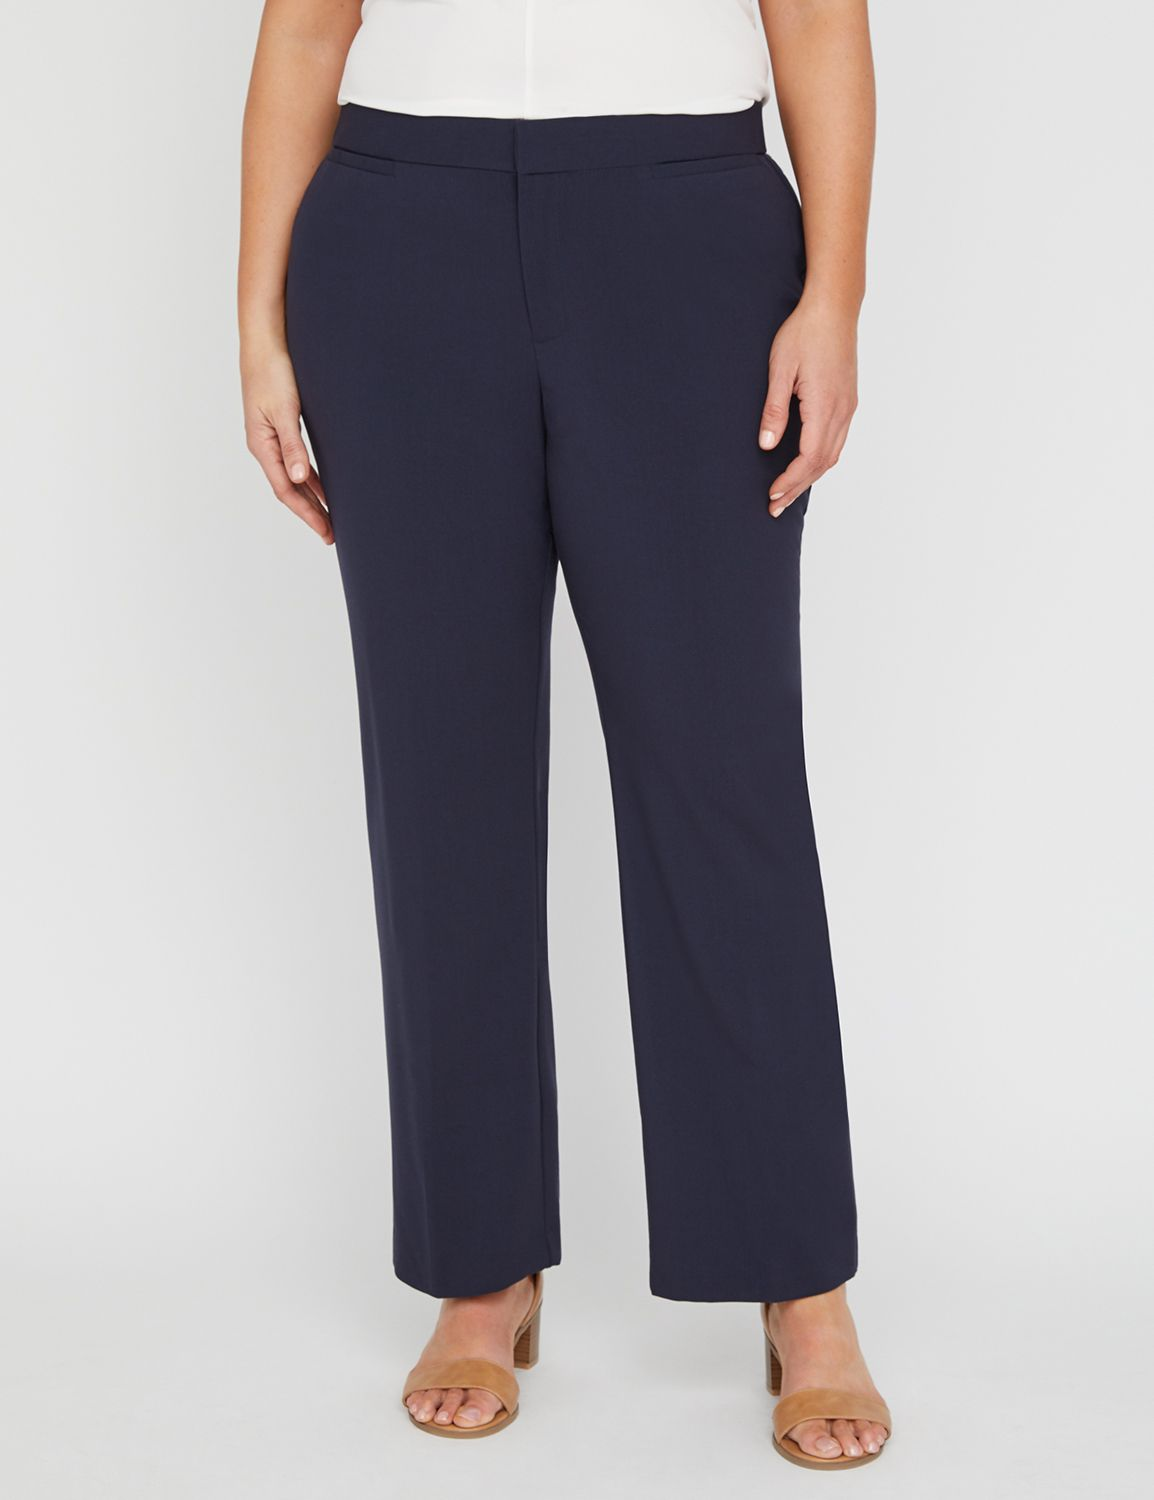 Right Fit Pant (Moderately Curvy) Right Fit Pant (Moderately Curvy) MP-300043671